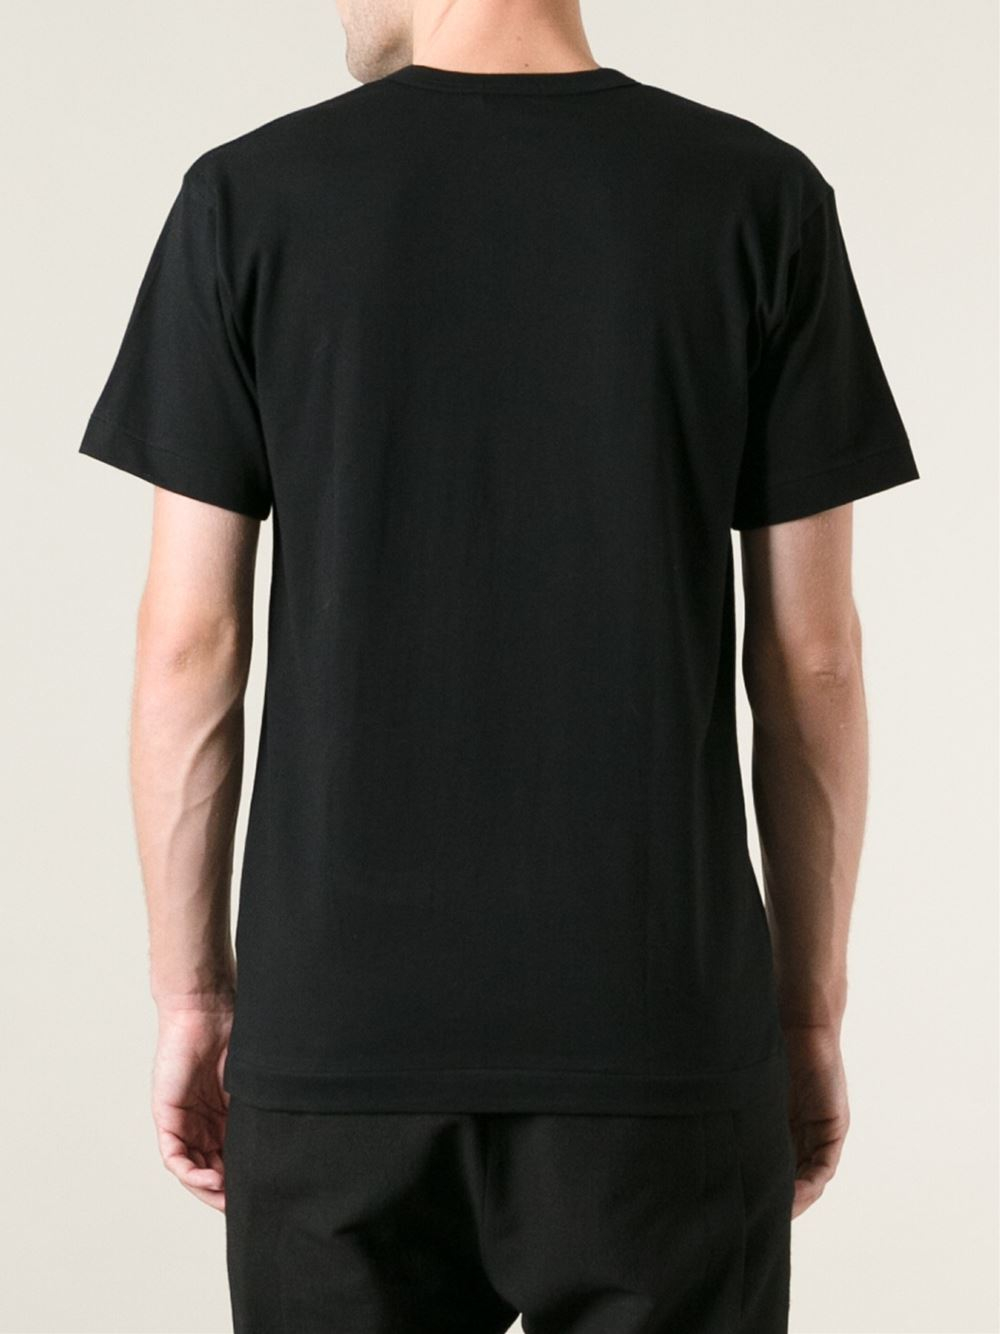 lyst comme des gar ons cut out detail t shirt in black for men. Black Bedroom Furniture Sets. Home Design Ideas